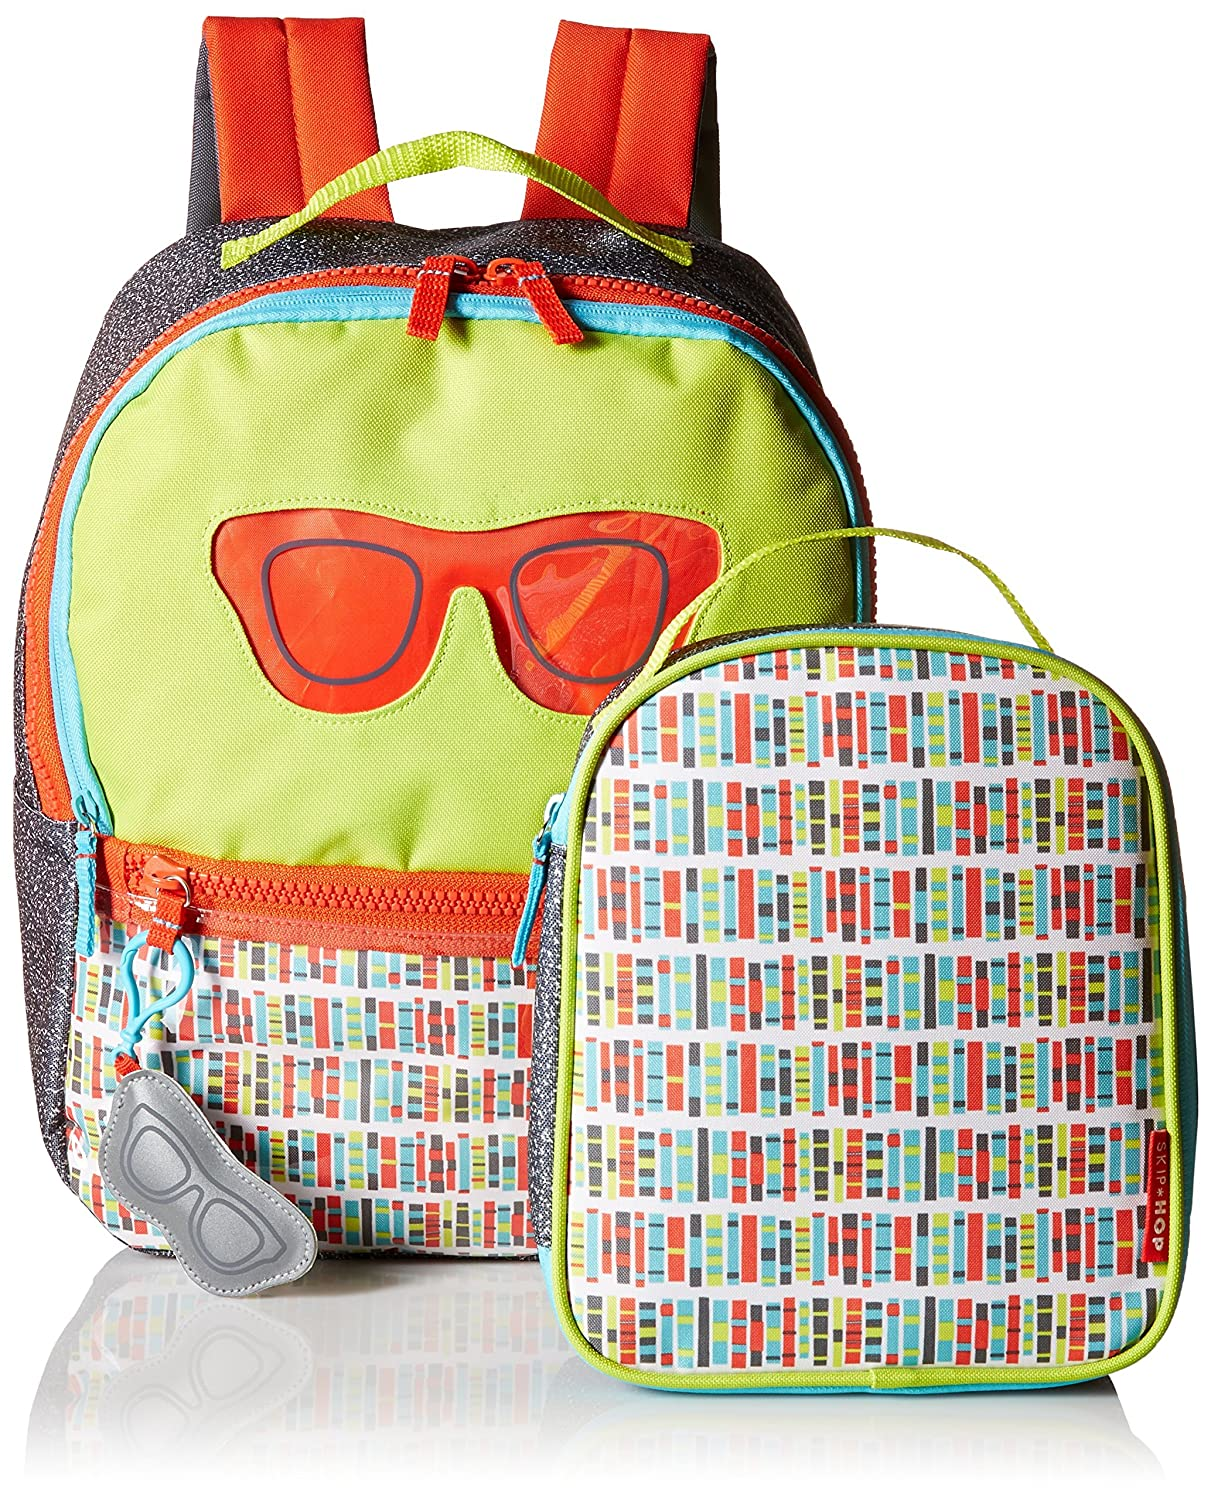 96d3761e80f4 Amazon.com  SkipHop Girls  Forget ME NOT Backpack   Lunch Bag-Specs   Clothing